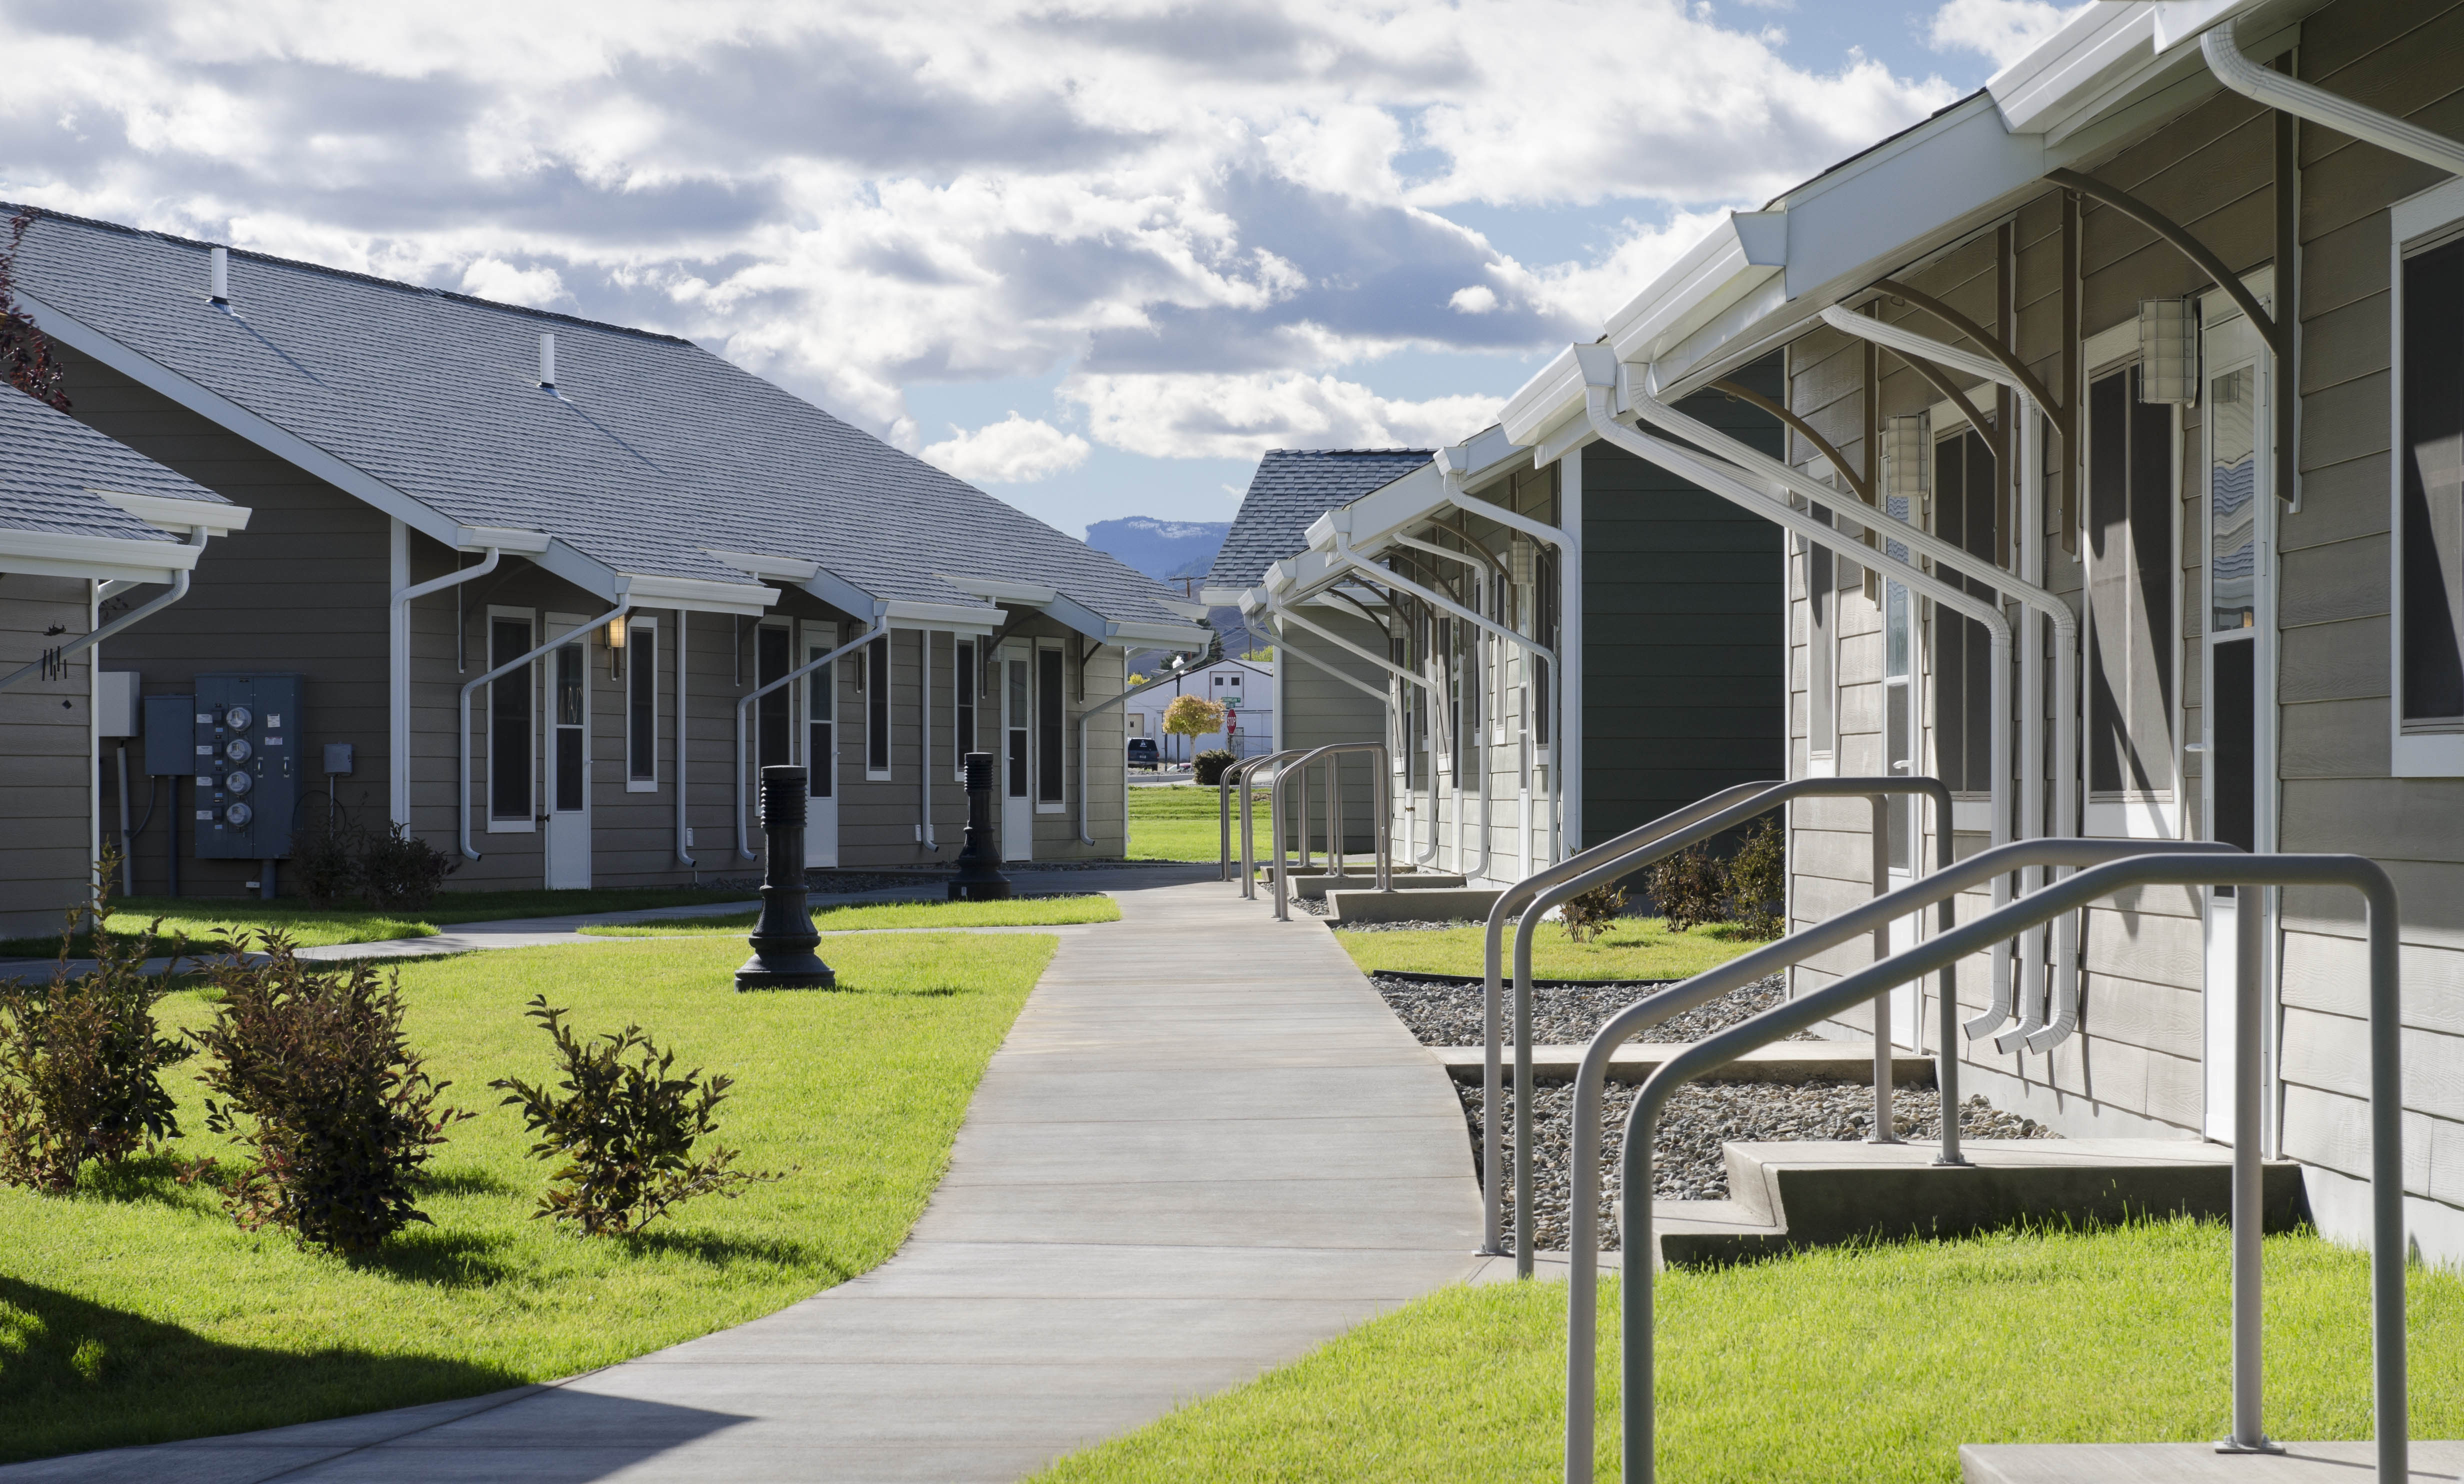 Join us on July 18 for a Public Meeting about Red Alder Apartments